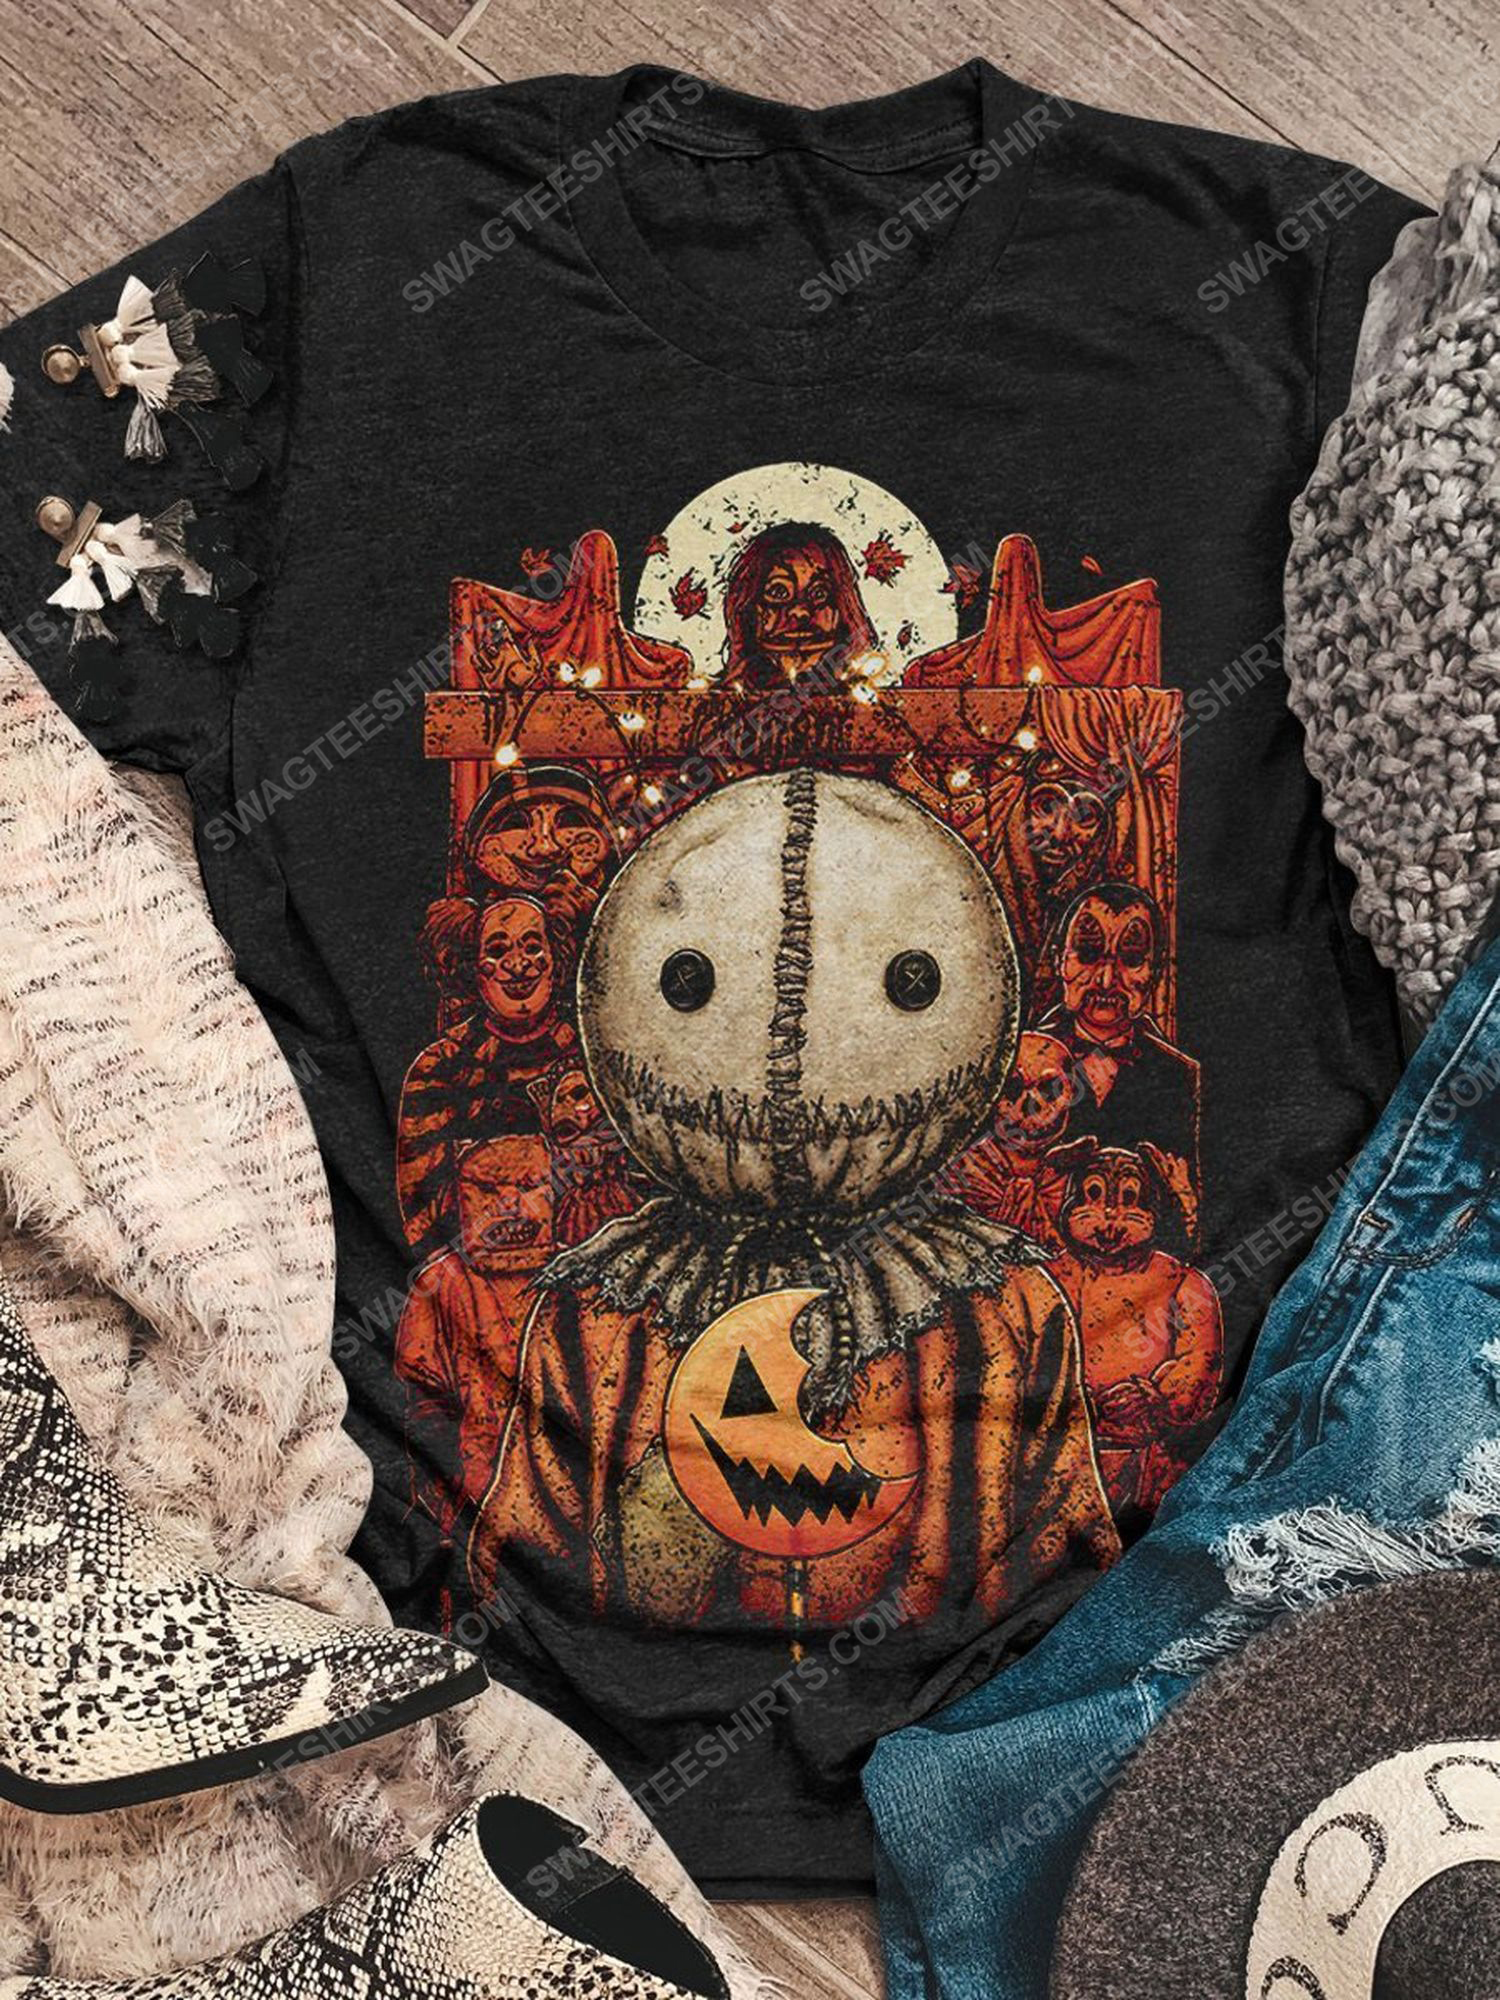 Halloween night and trick or treat scary movie shirt 1 - Copy (3)